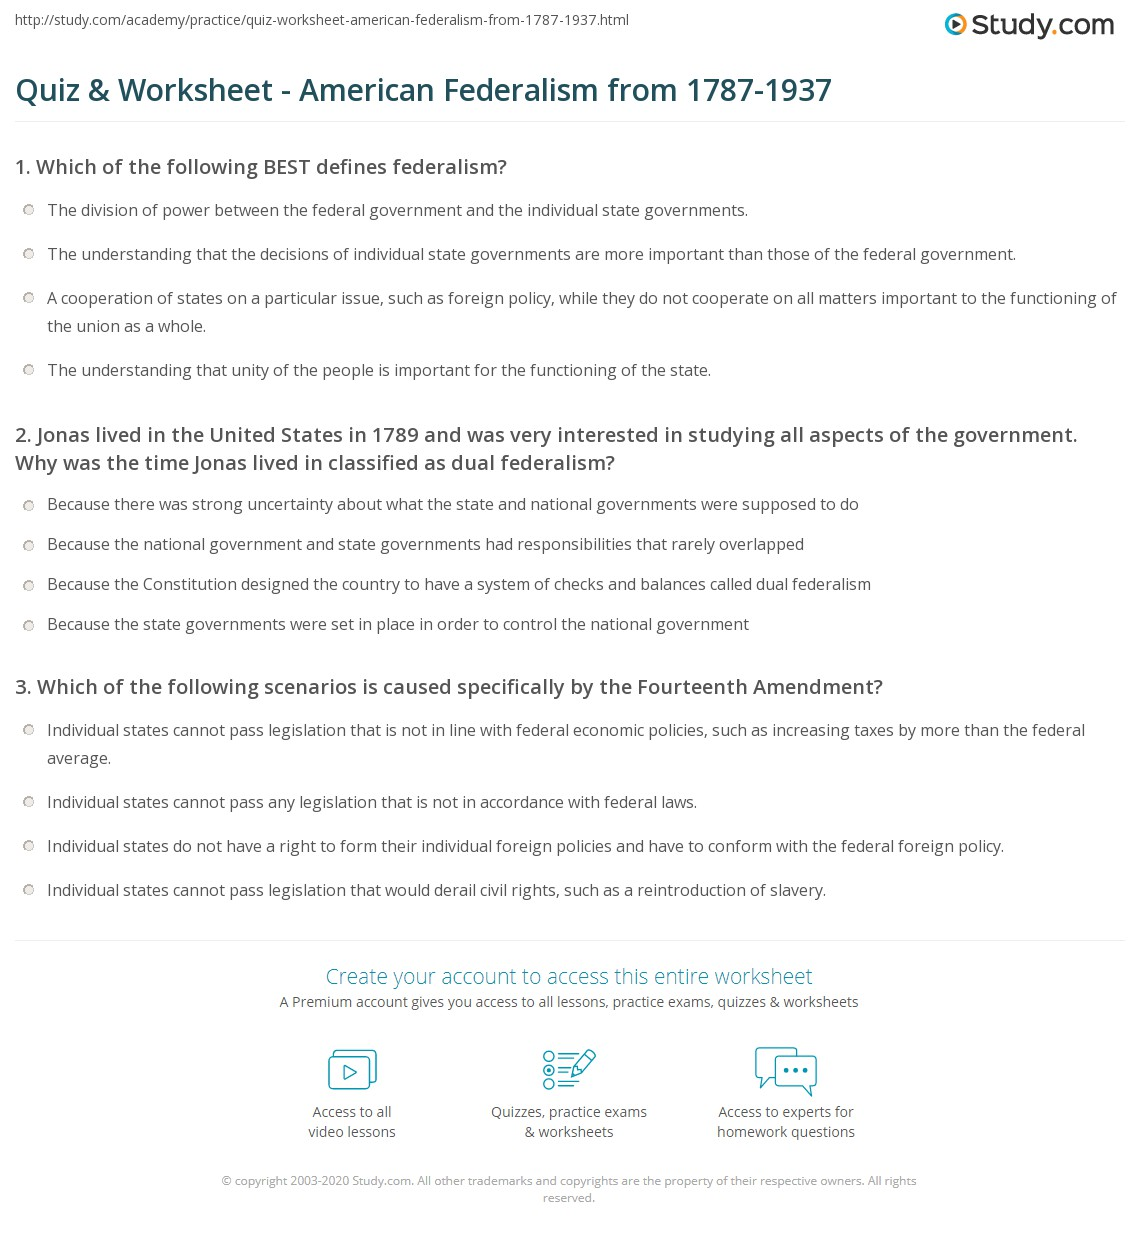 Quiz & Worksheet - American Federalism from 1787-1937 | Study.com